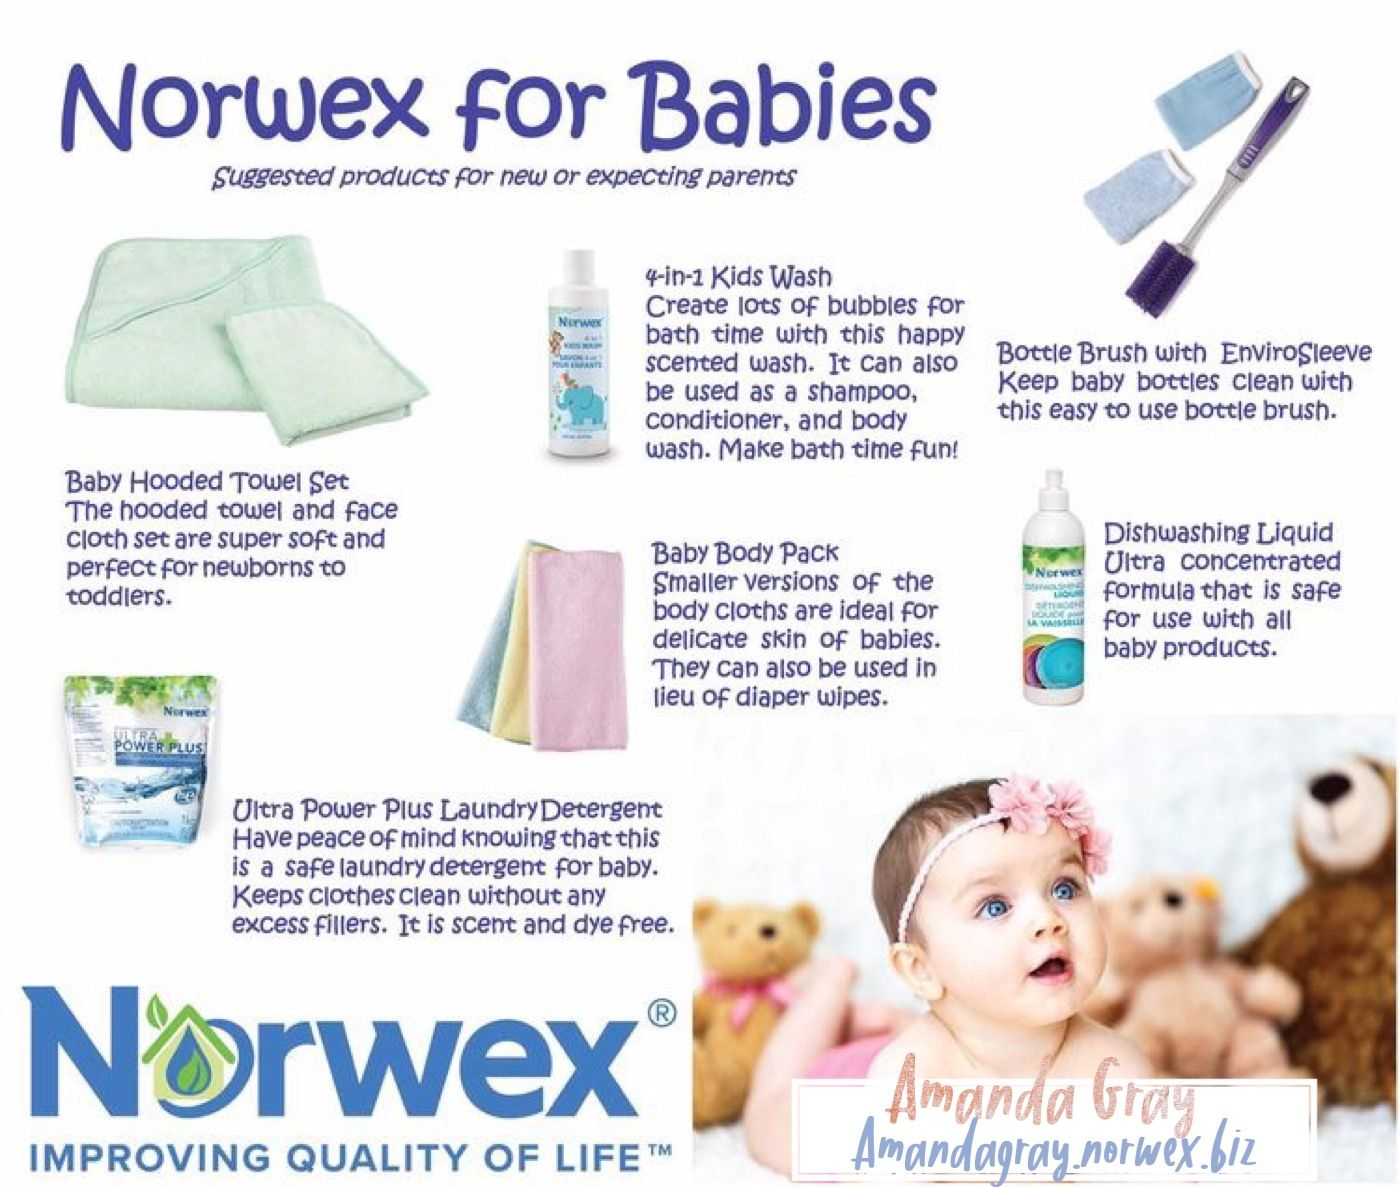 Norwex Cleaning Supplies: #Norwex #babyshower #babycare #chemicalfree